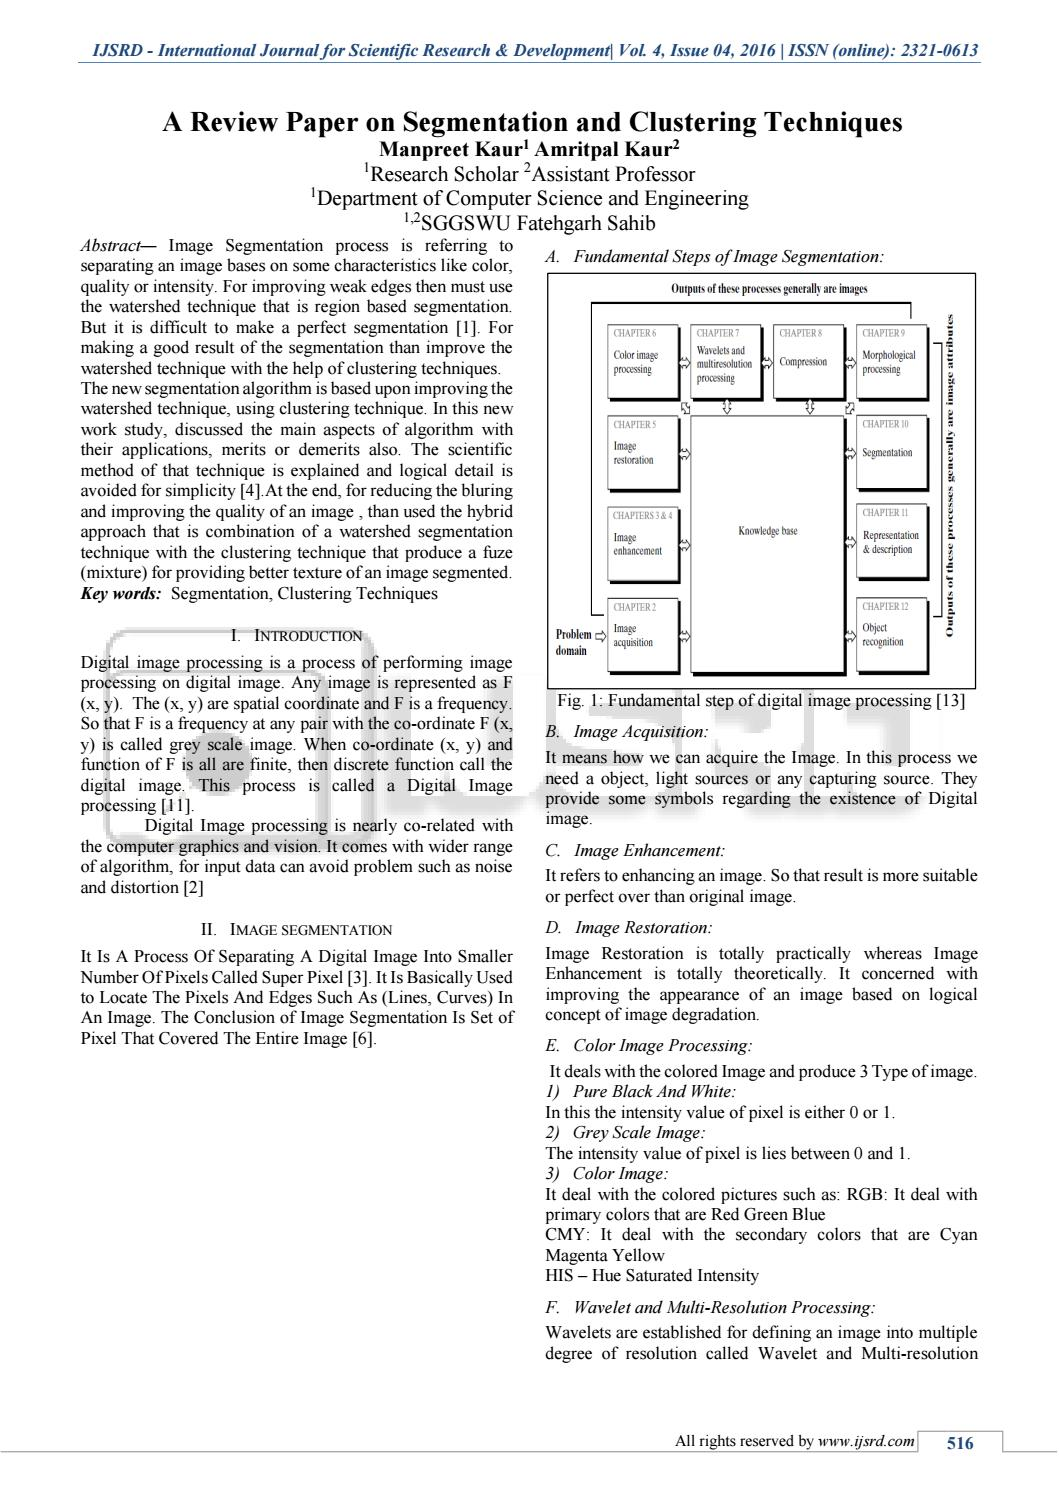 A Review Paper on Segmentation and Clustering Techniques